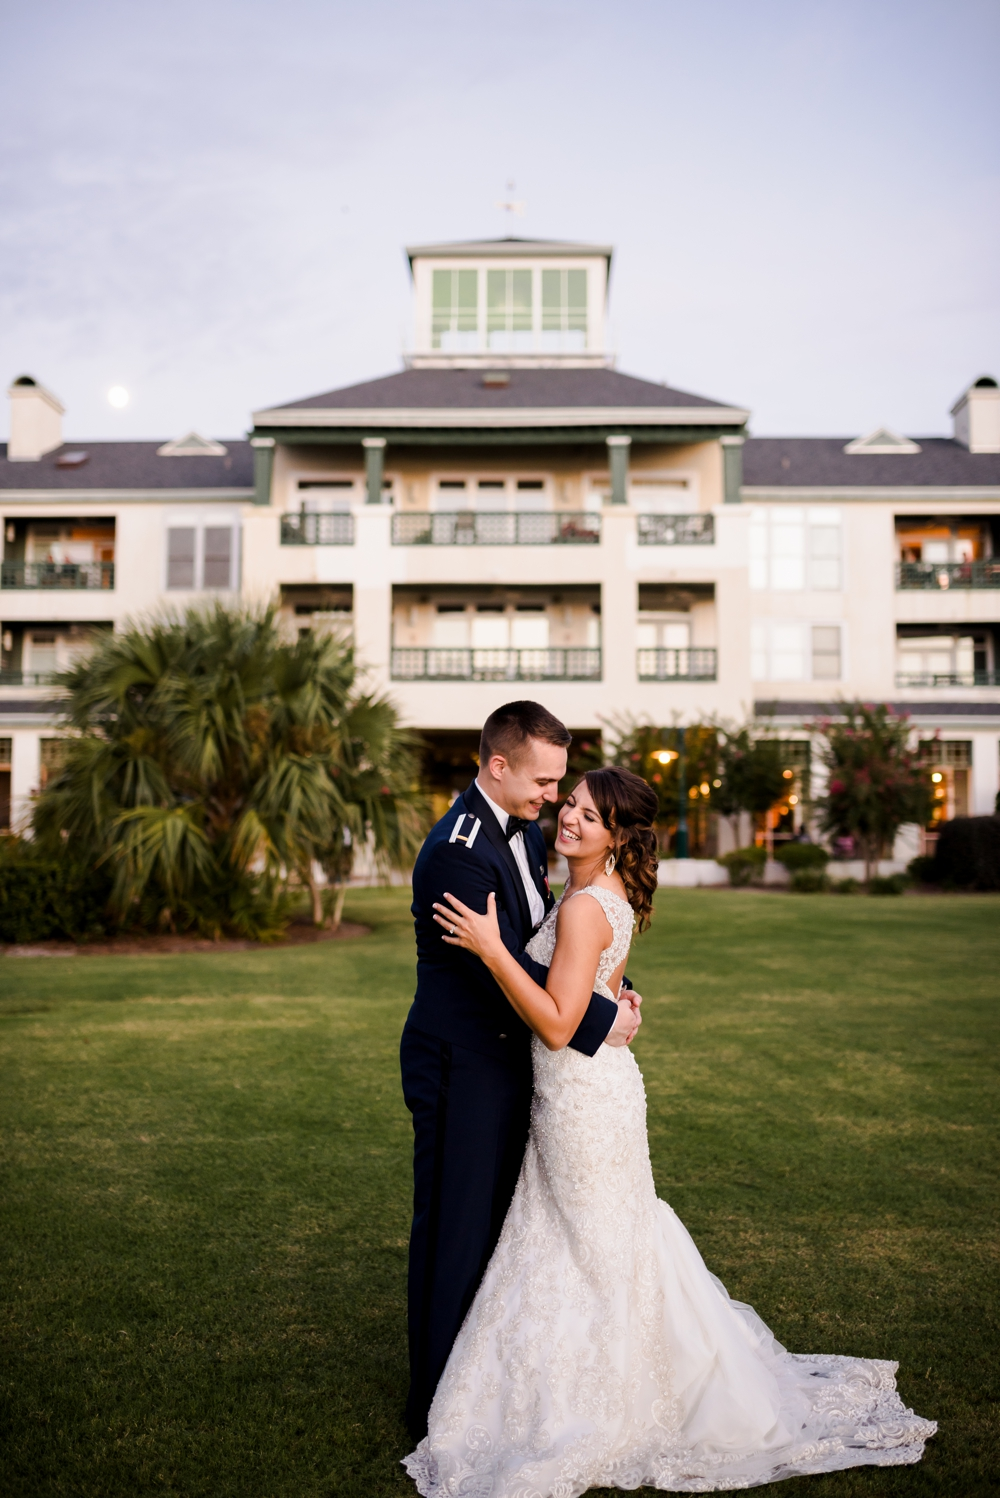 wallin-florida-wedding-photographer-kiersten-grant-176.jpg